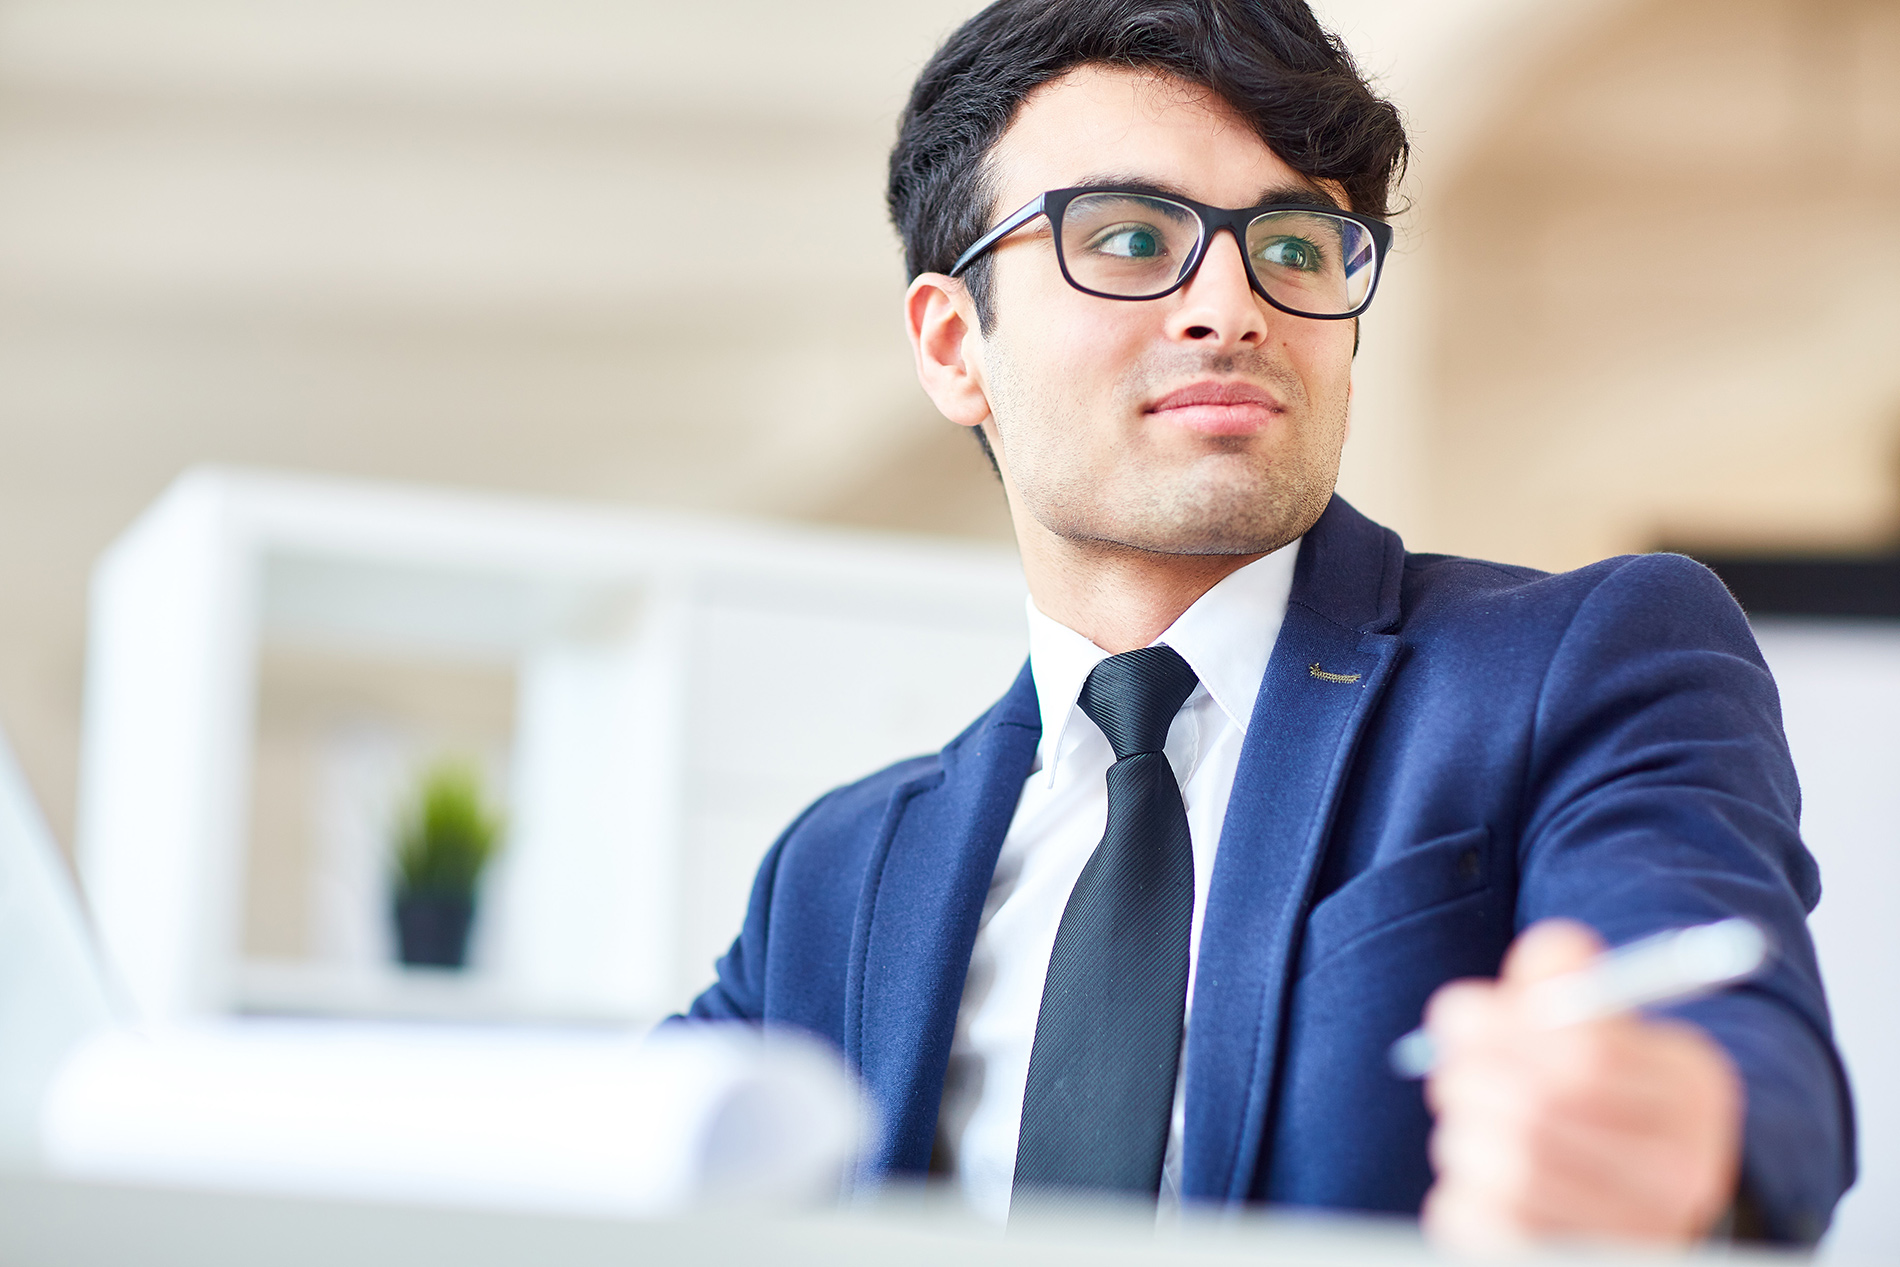 attentive male employee with glasses